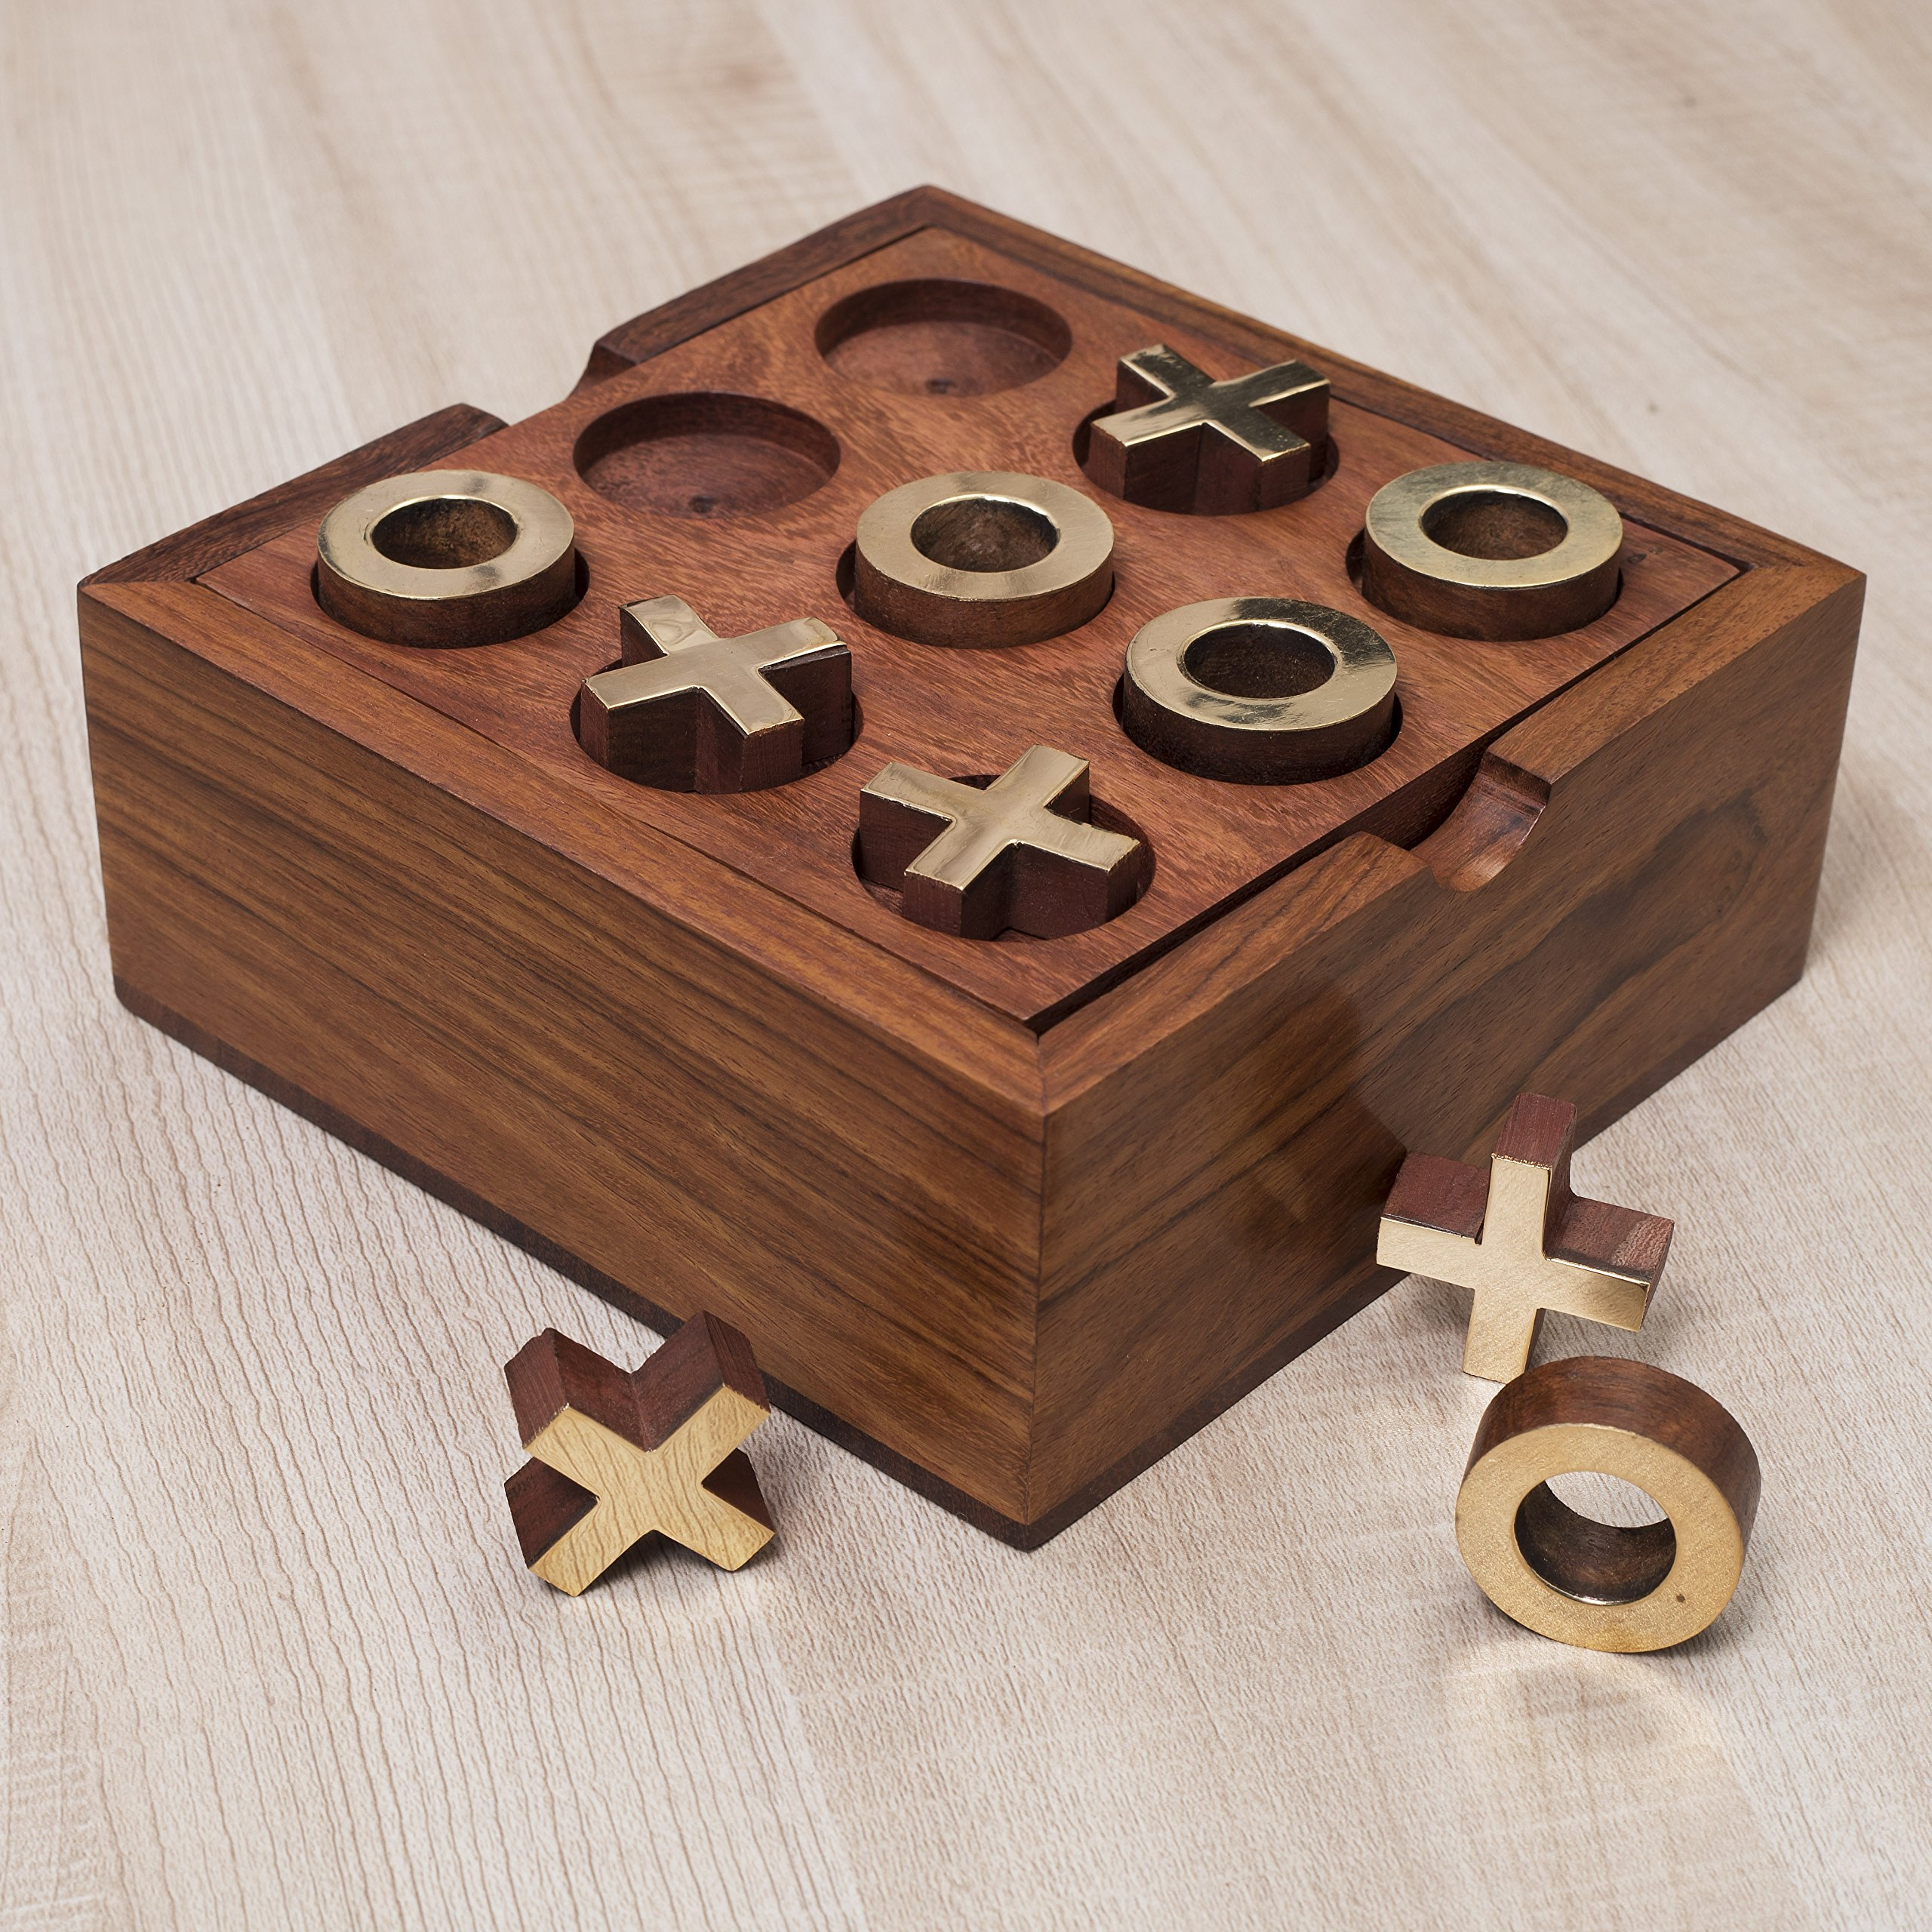 Rusticity Wood Tic Tac Toe & Solitaire Board Game- Set of 2 Games | Handmade |(5x5 in) by Rusticity